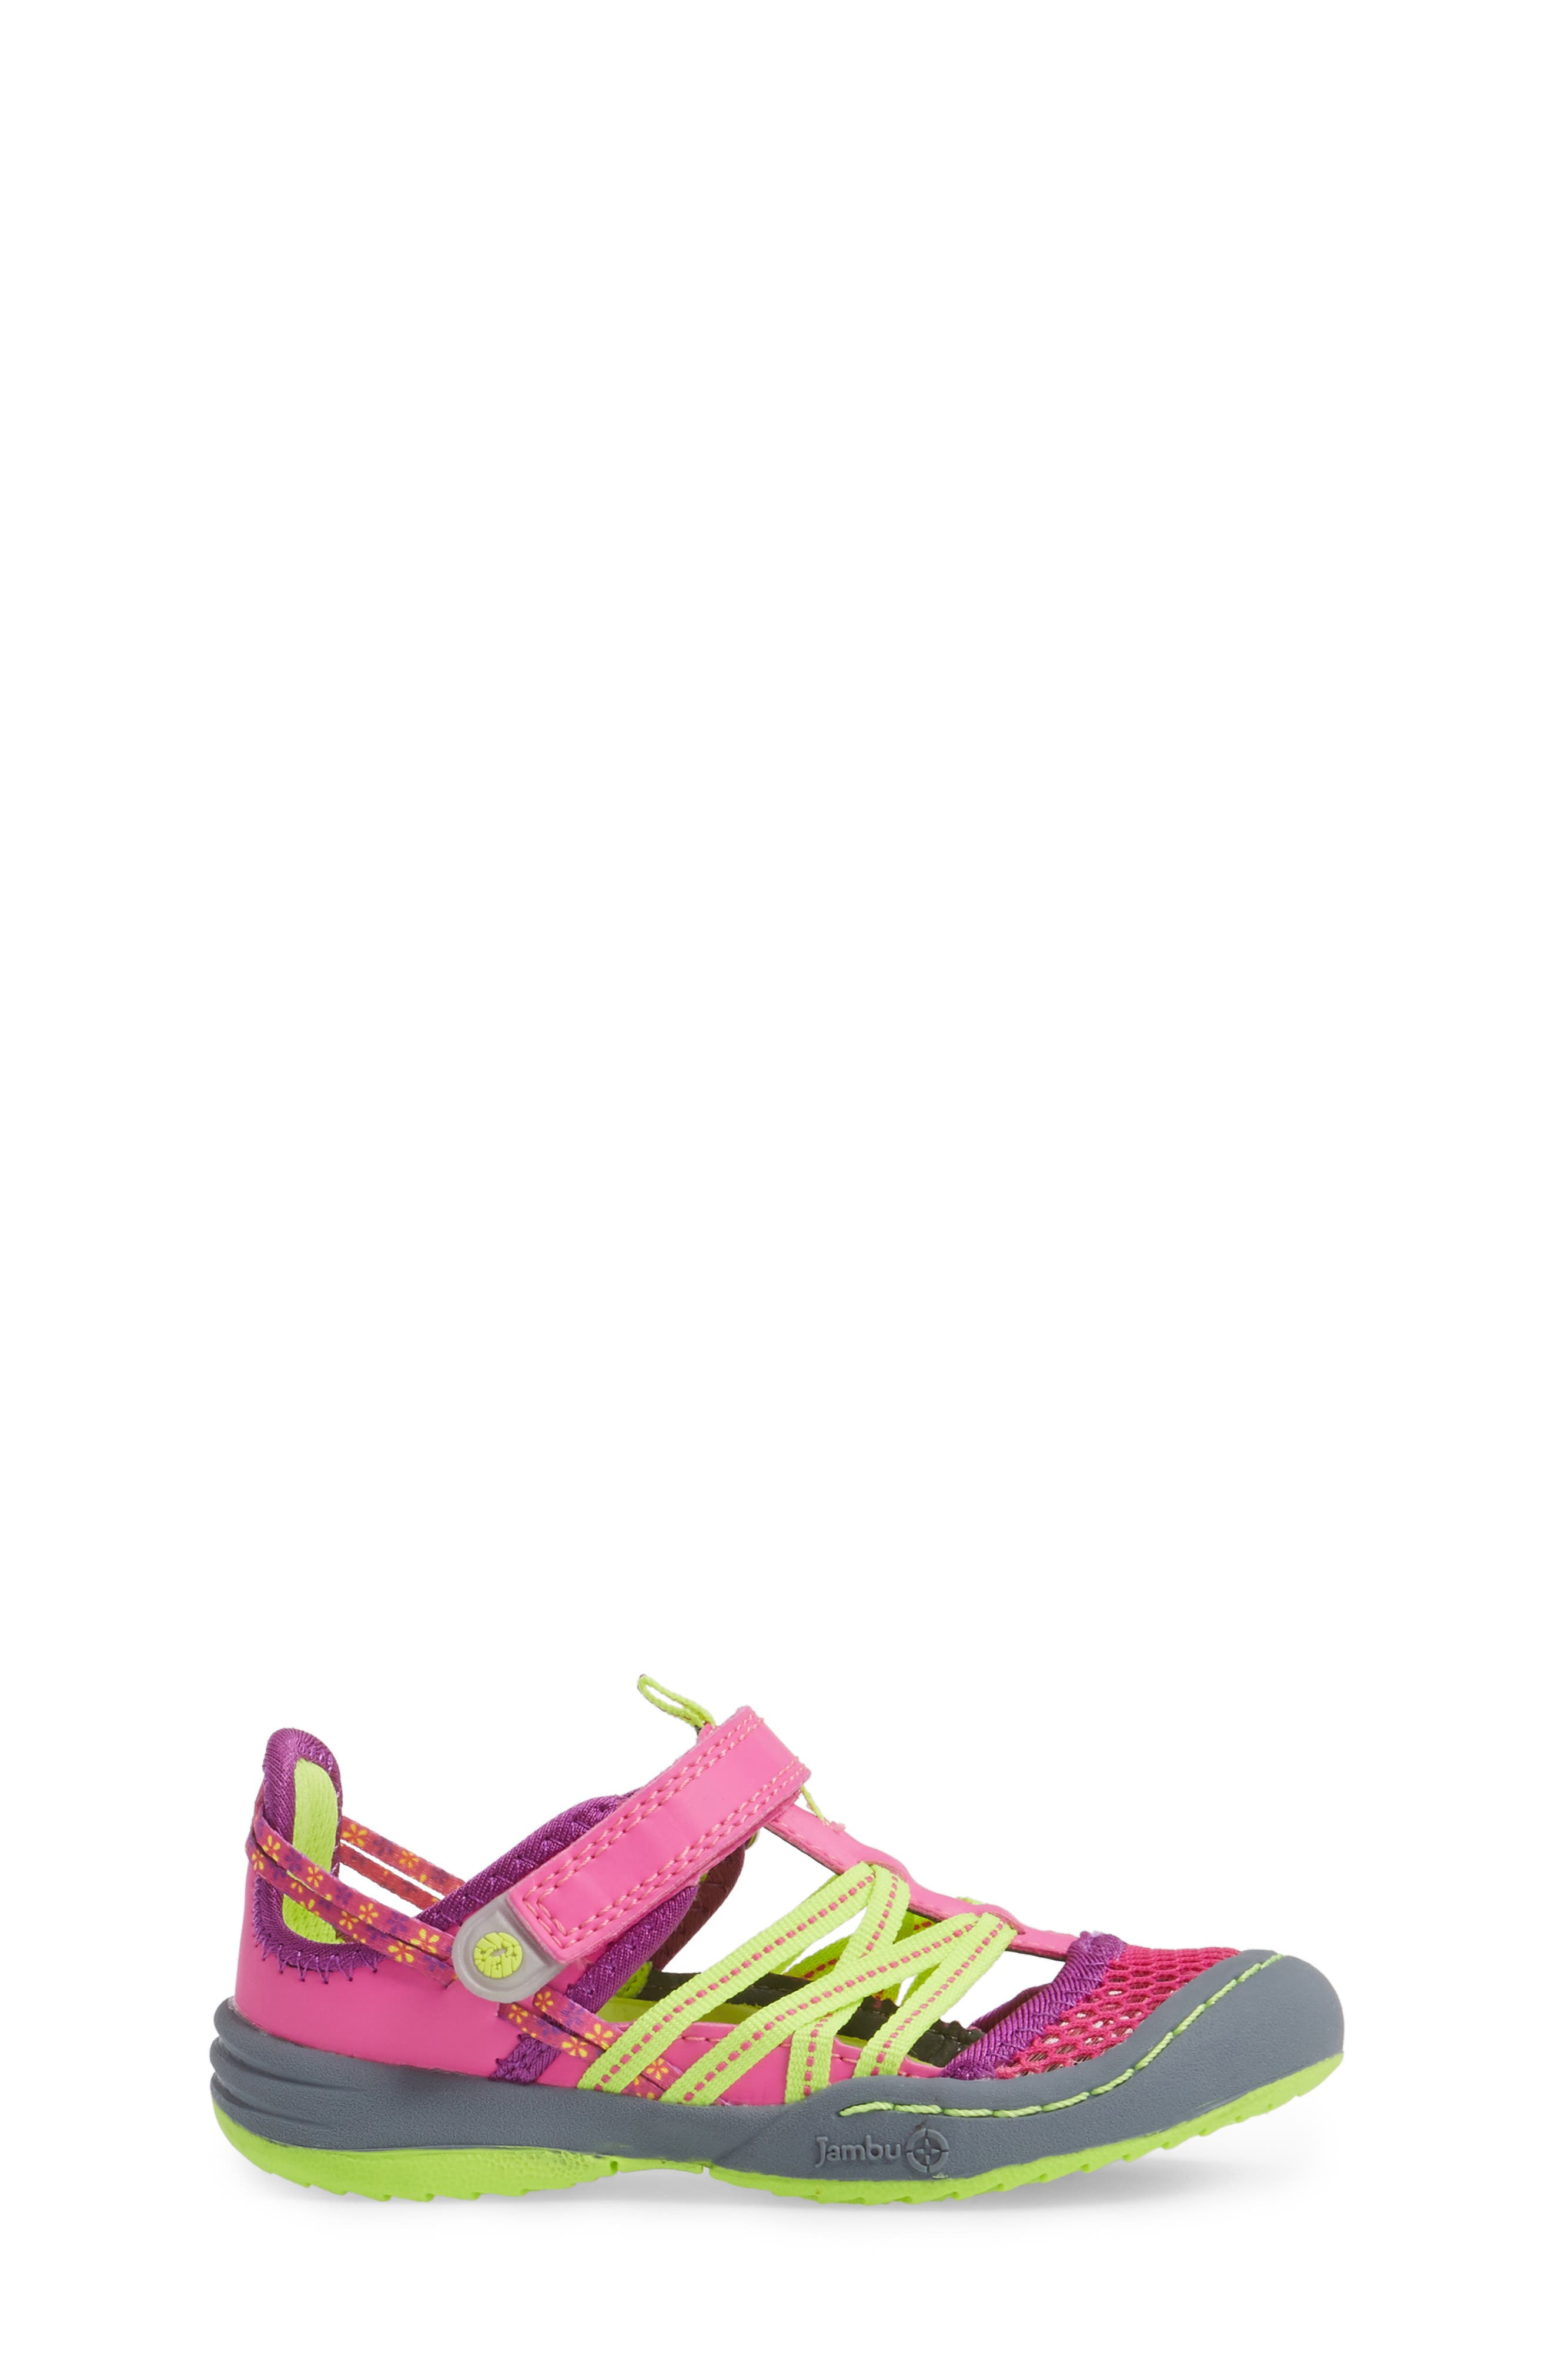 Everly Water Sport Fisherman Sandal,                             Alternate thumbnail 3, color,                             Pink/ Neon